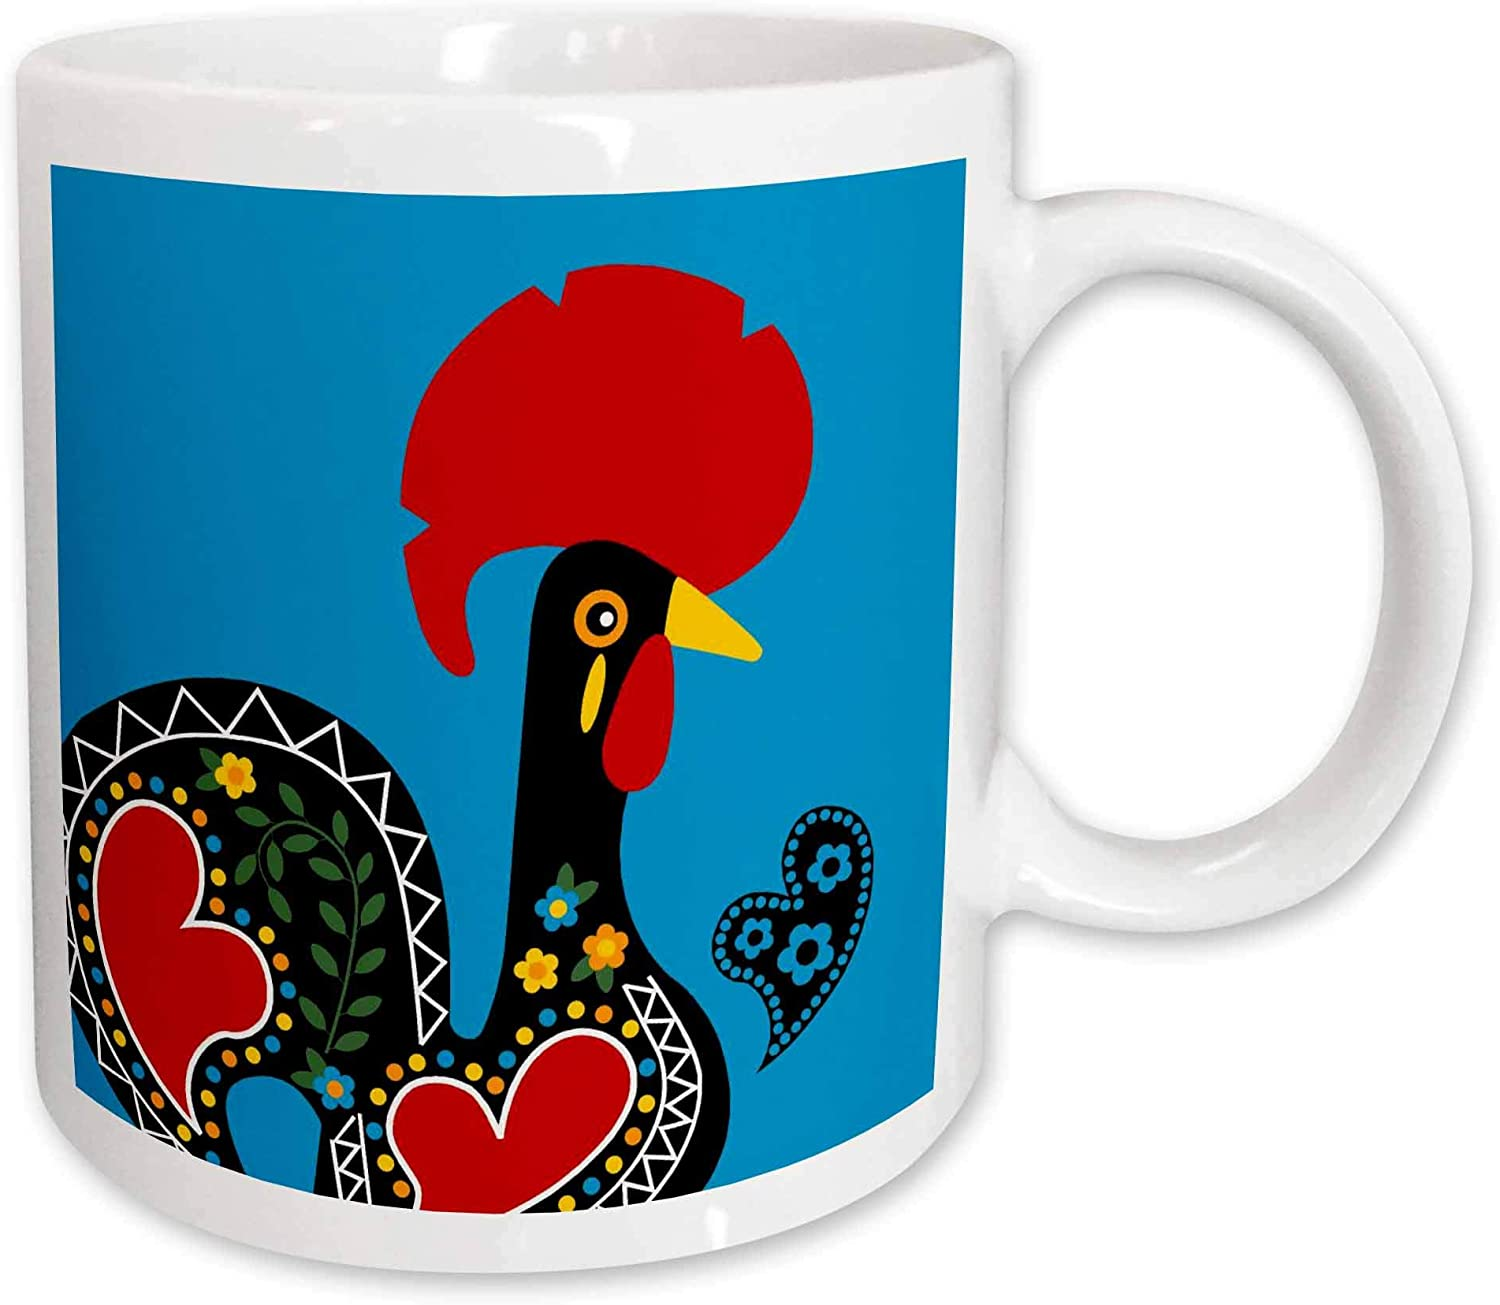 3drose Mug 160660 1 The Black Portuguese Rooster On A Blue Background With A Heart Ceramic Mug 11 Ounce Kitchen Dining